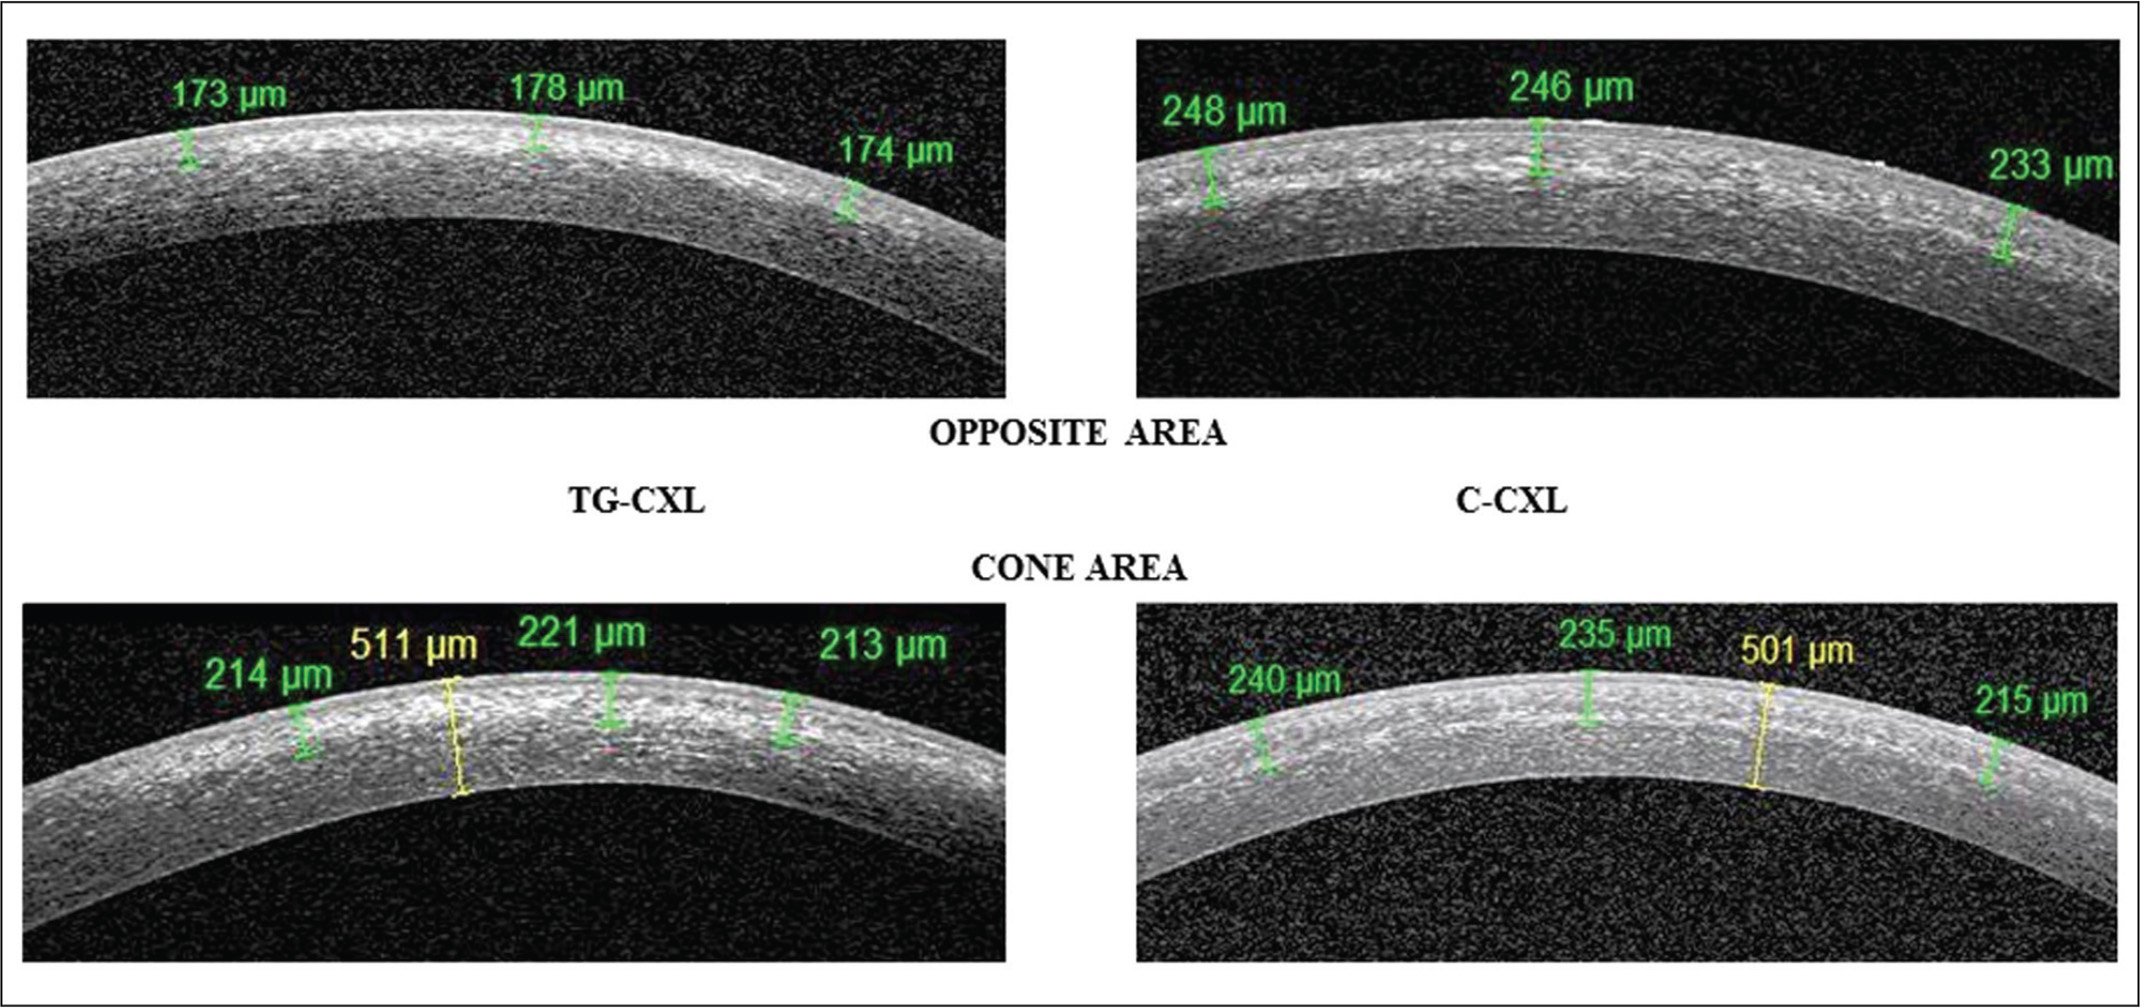 Examples of corneal stromal demarcation line in both groups at 1 month. In the topography-guided corneal collagen cross-linking (TG-CXL) group, the mean demarcation line depth is more important in the cone area than in the surrounding area. In the conventional corneal collagen cross-linking (C-CXL) group, the demarcation line is as deep in the cone area as in the surrounding area.